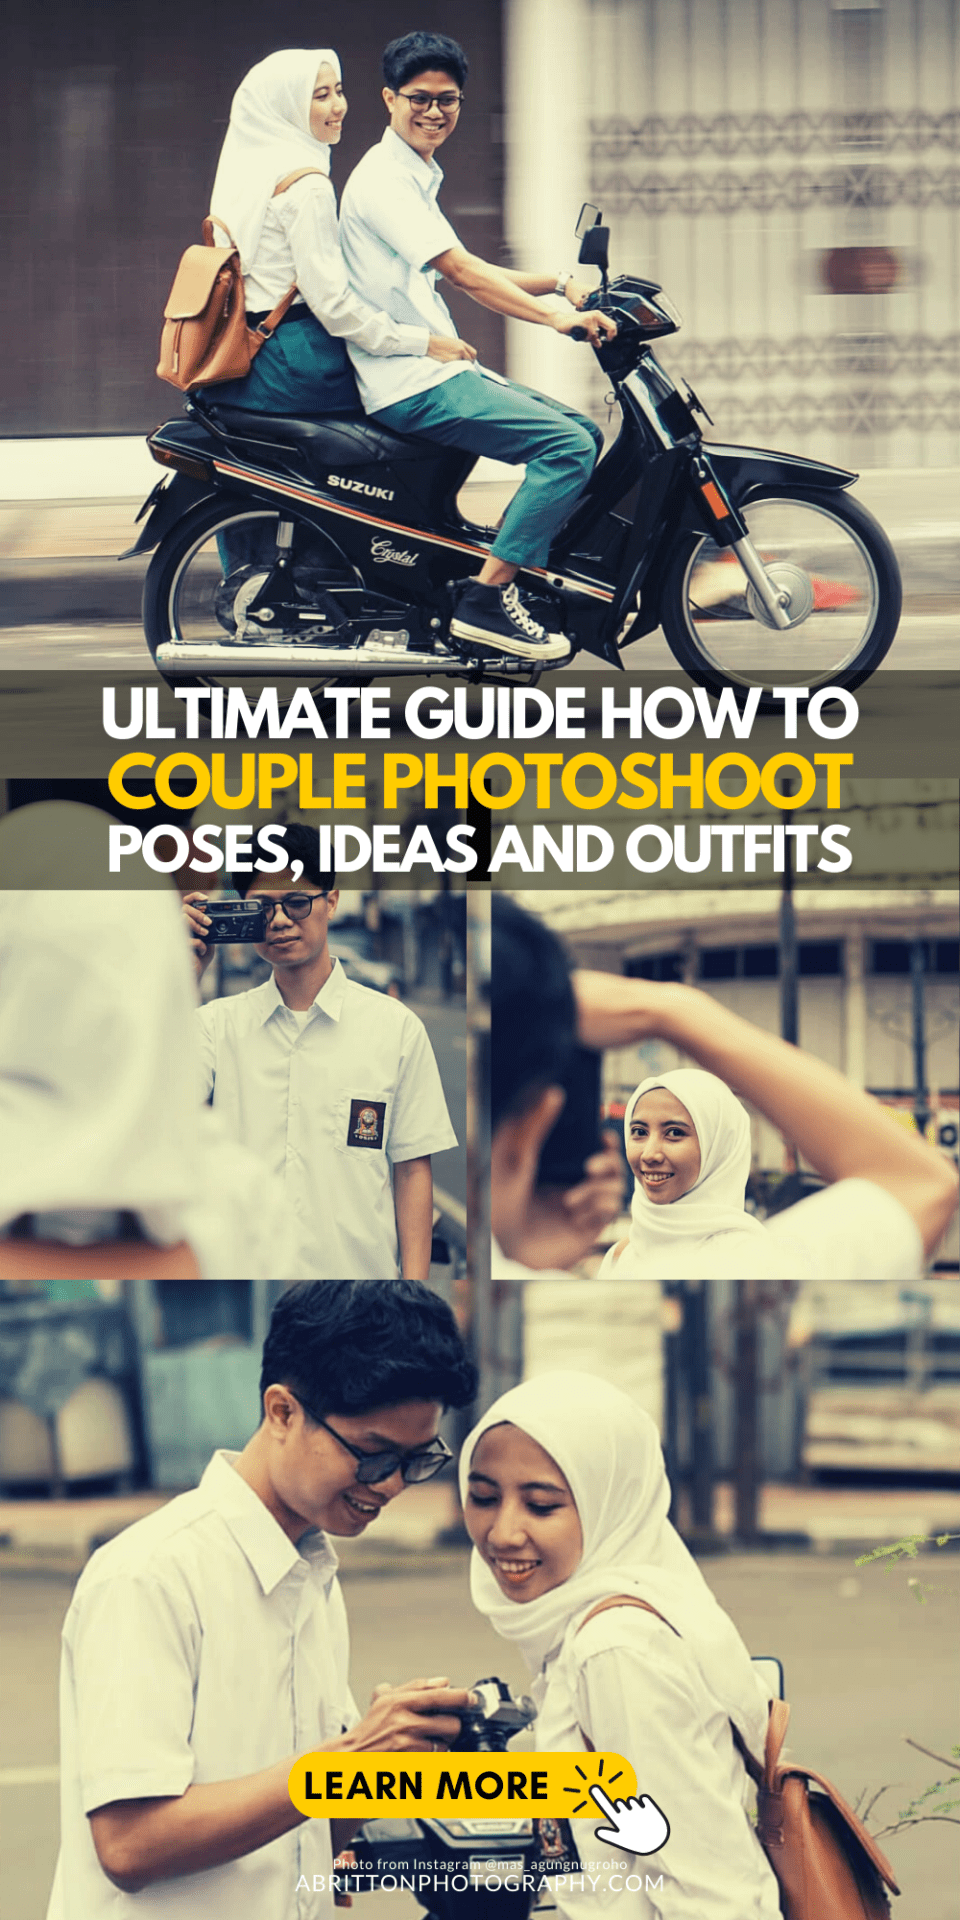 Ultimate Guide How to Take Couple Photoshoot Poses, Ideas and Outfits